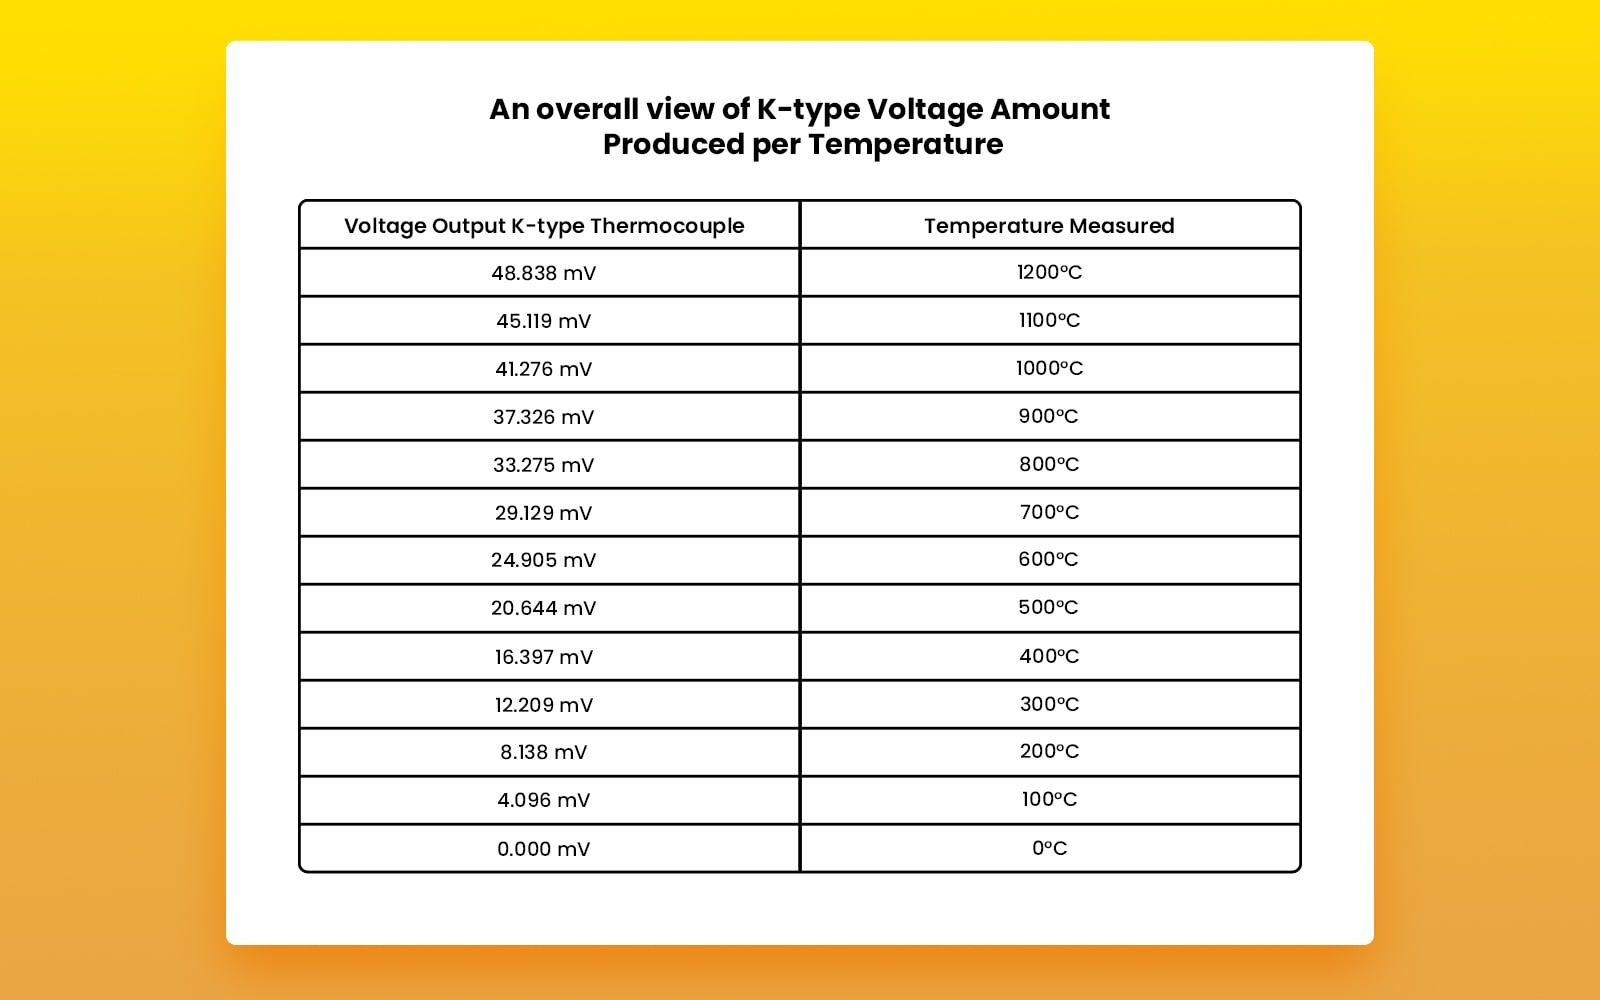 An overall view of K-type Voltage Amount